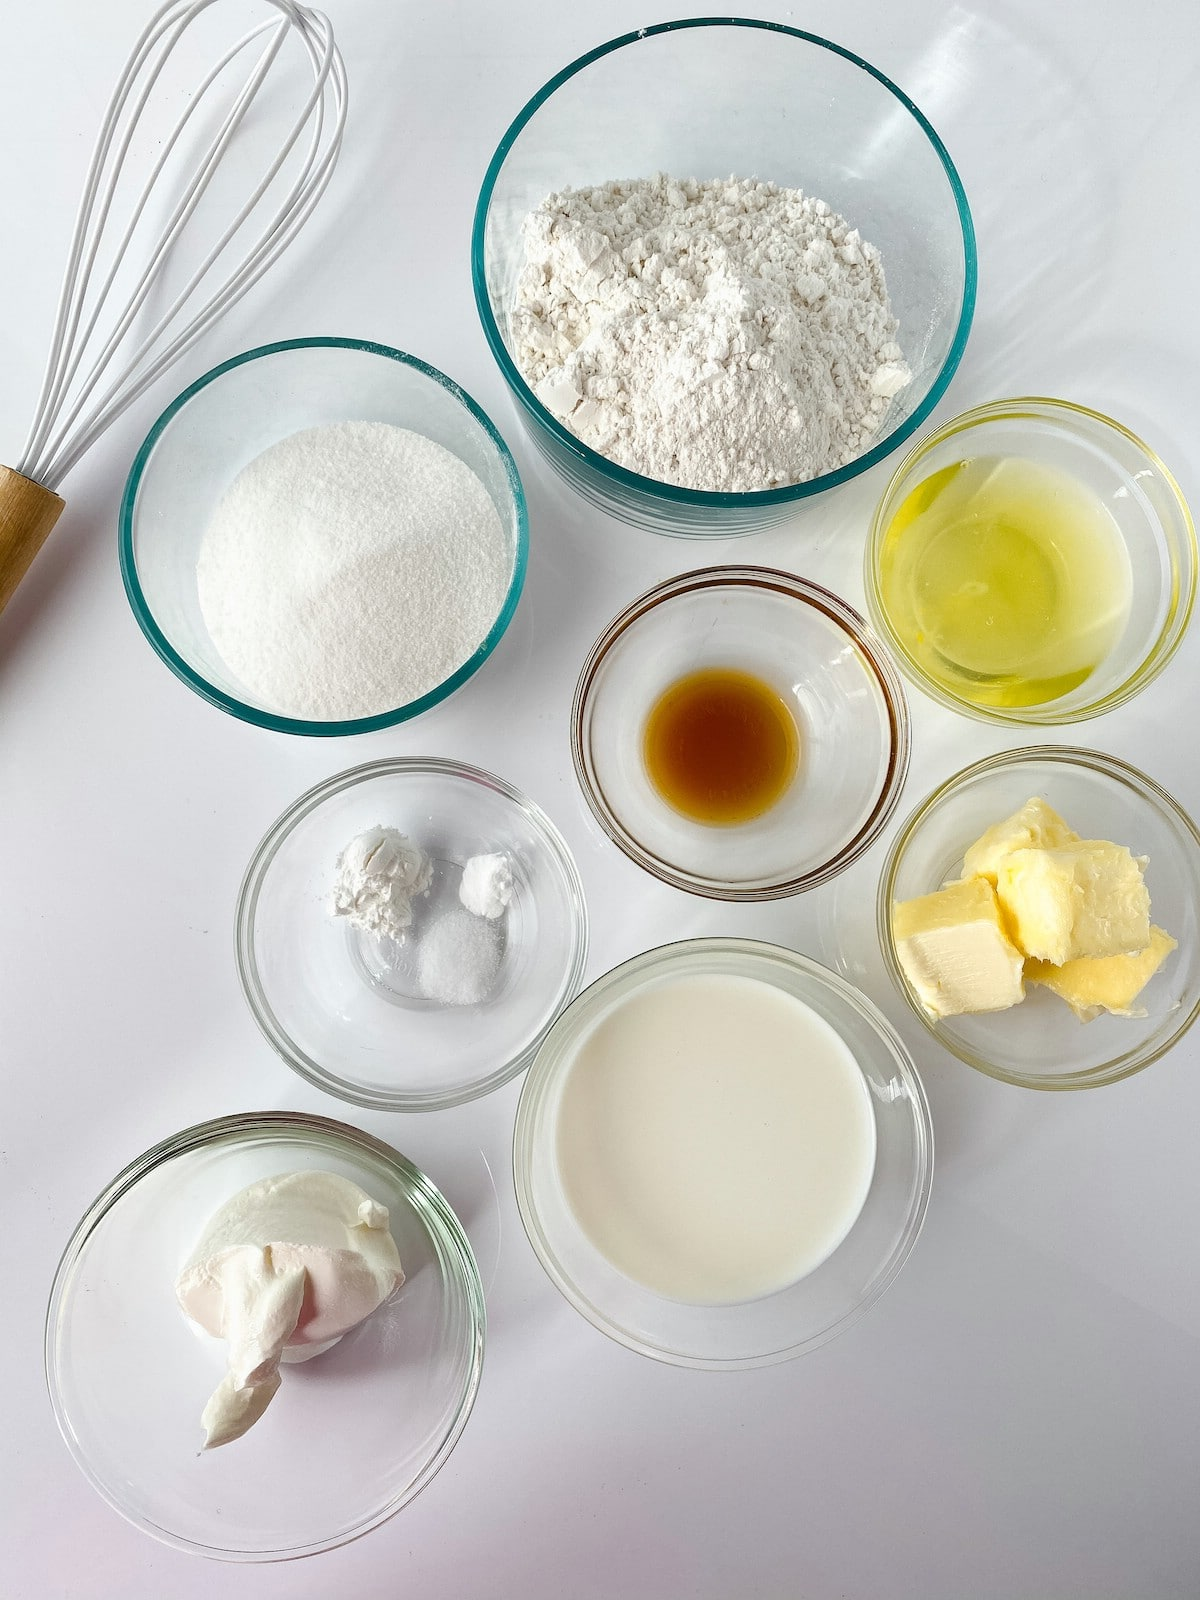 Ingredients for cupcakes in bowl on white counter